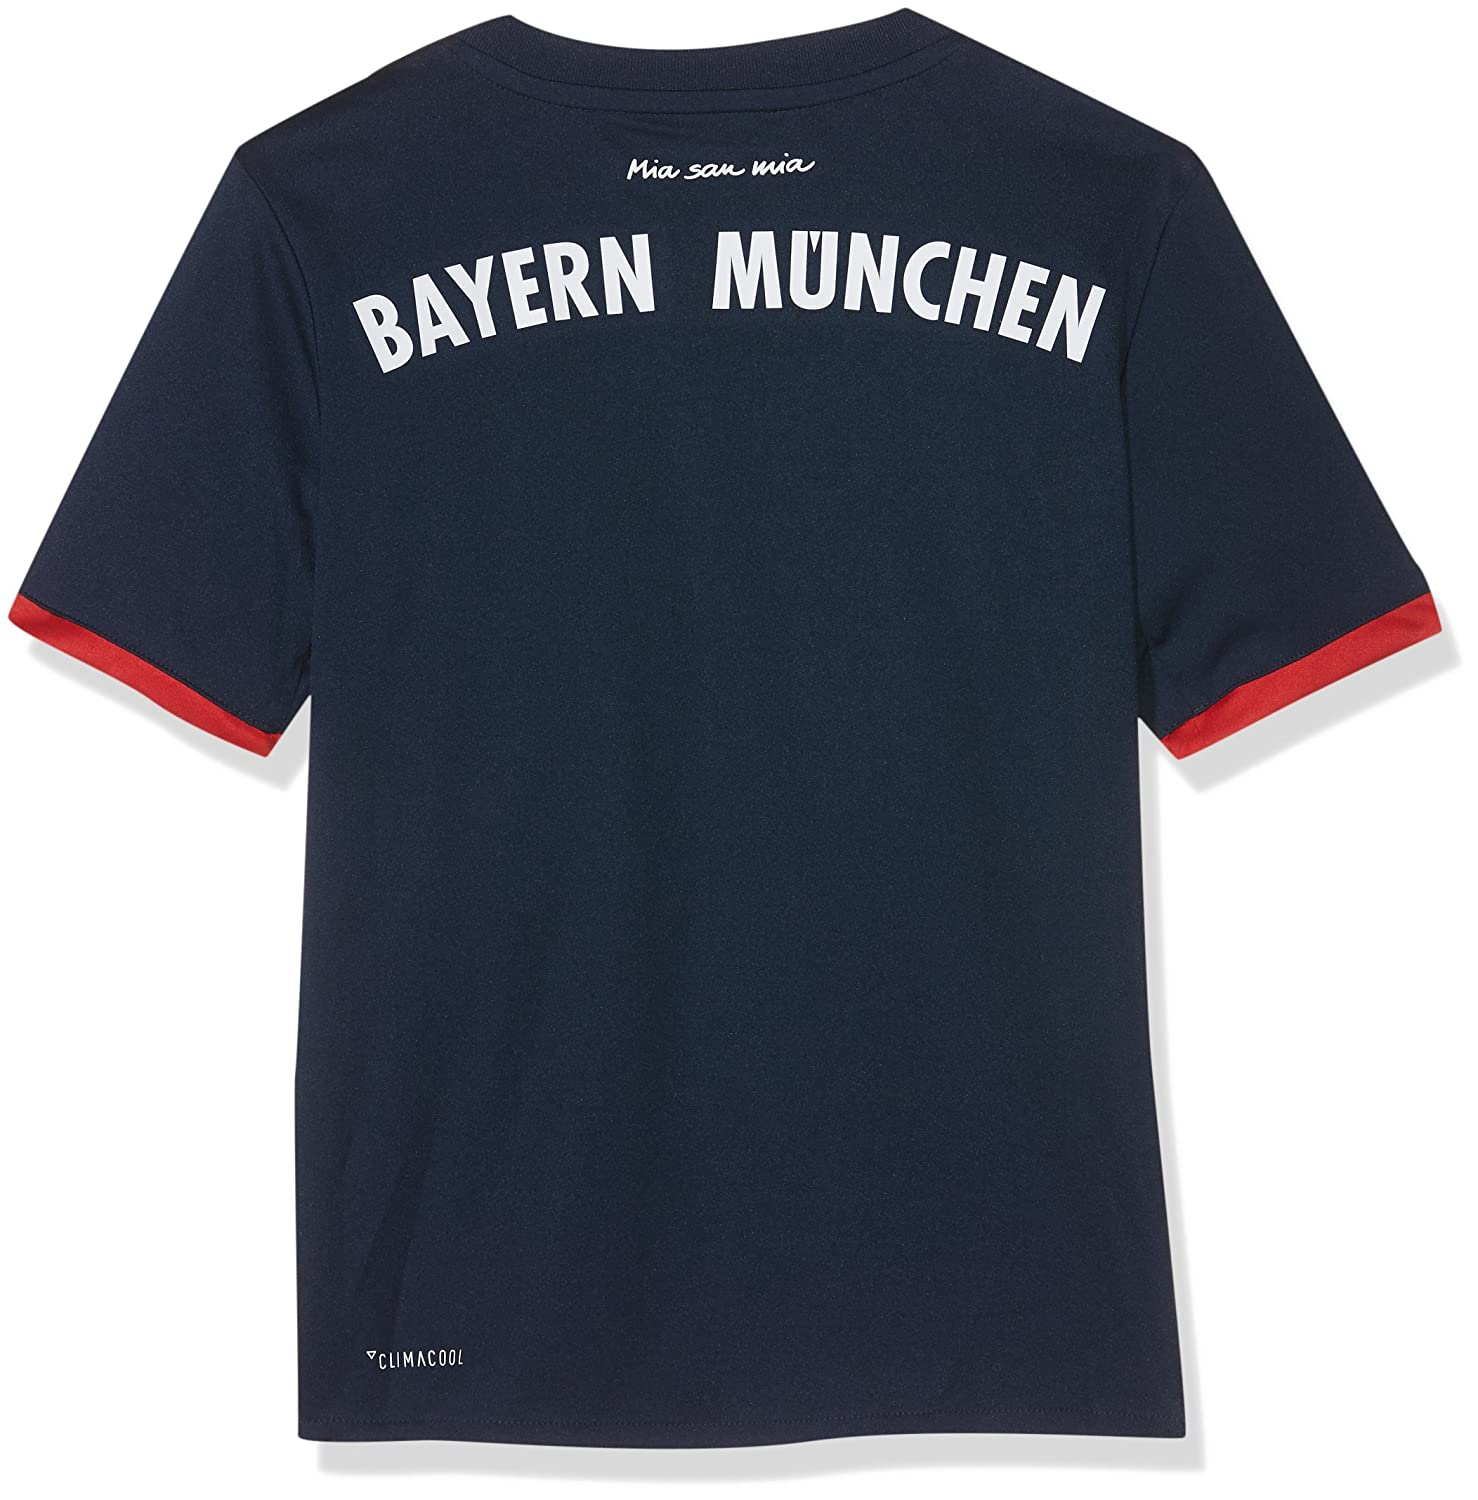 meet 9be6c 4e4e1 adidas 2017-2018 Bayern Munich Away Football Soccer T-Shirt Jersey (Kids)